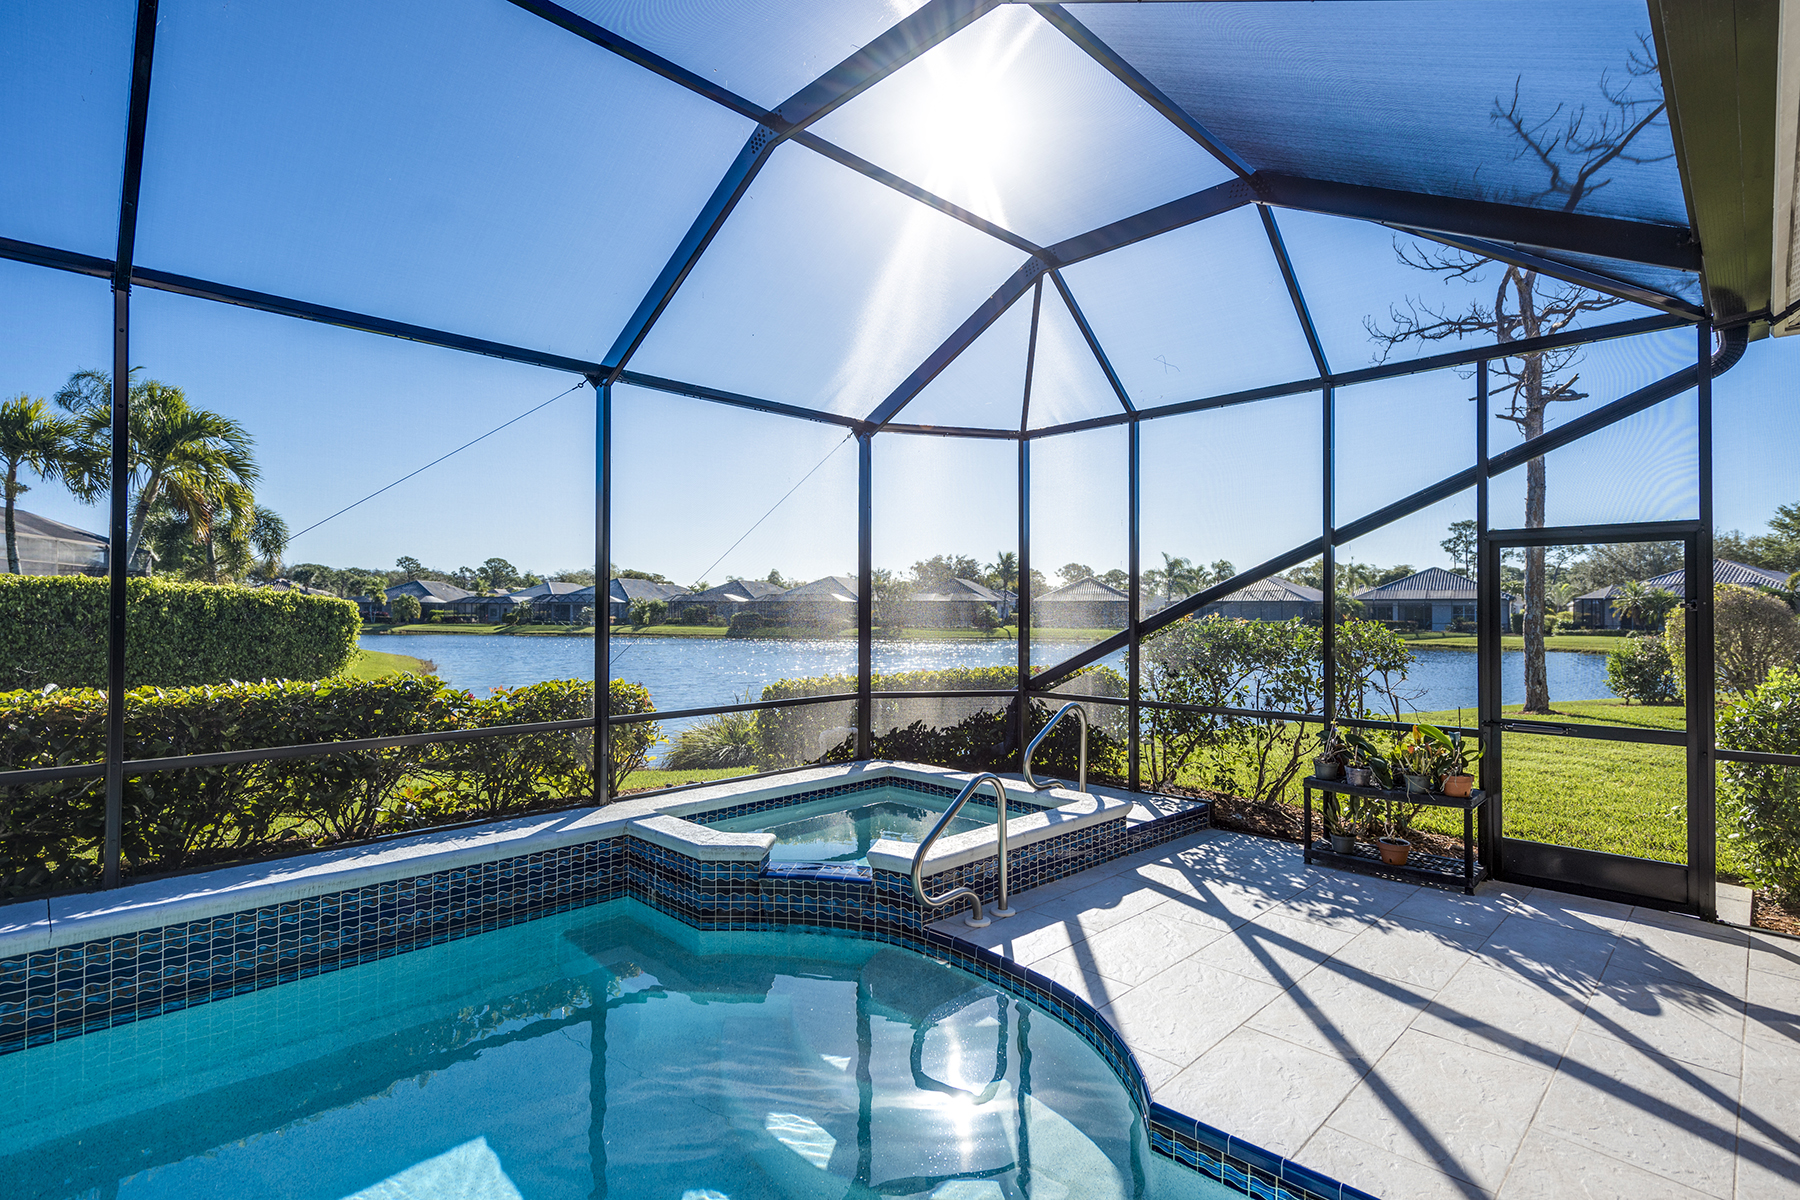 Single Family Homes for Sale at PELICAN LANDING - CAPRI 24777 Goldcrest Drive Bonita Springs, Florida 34134 United States